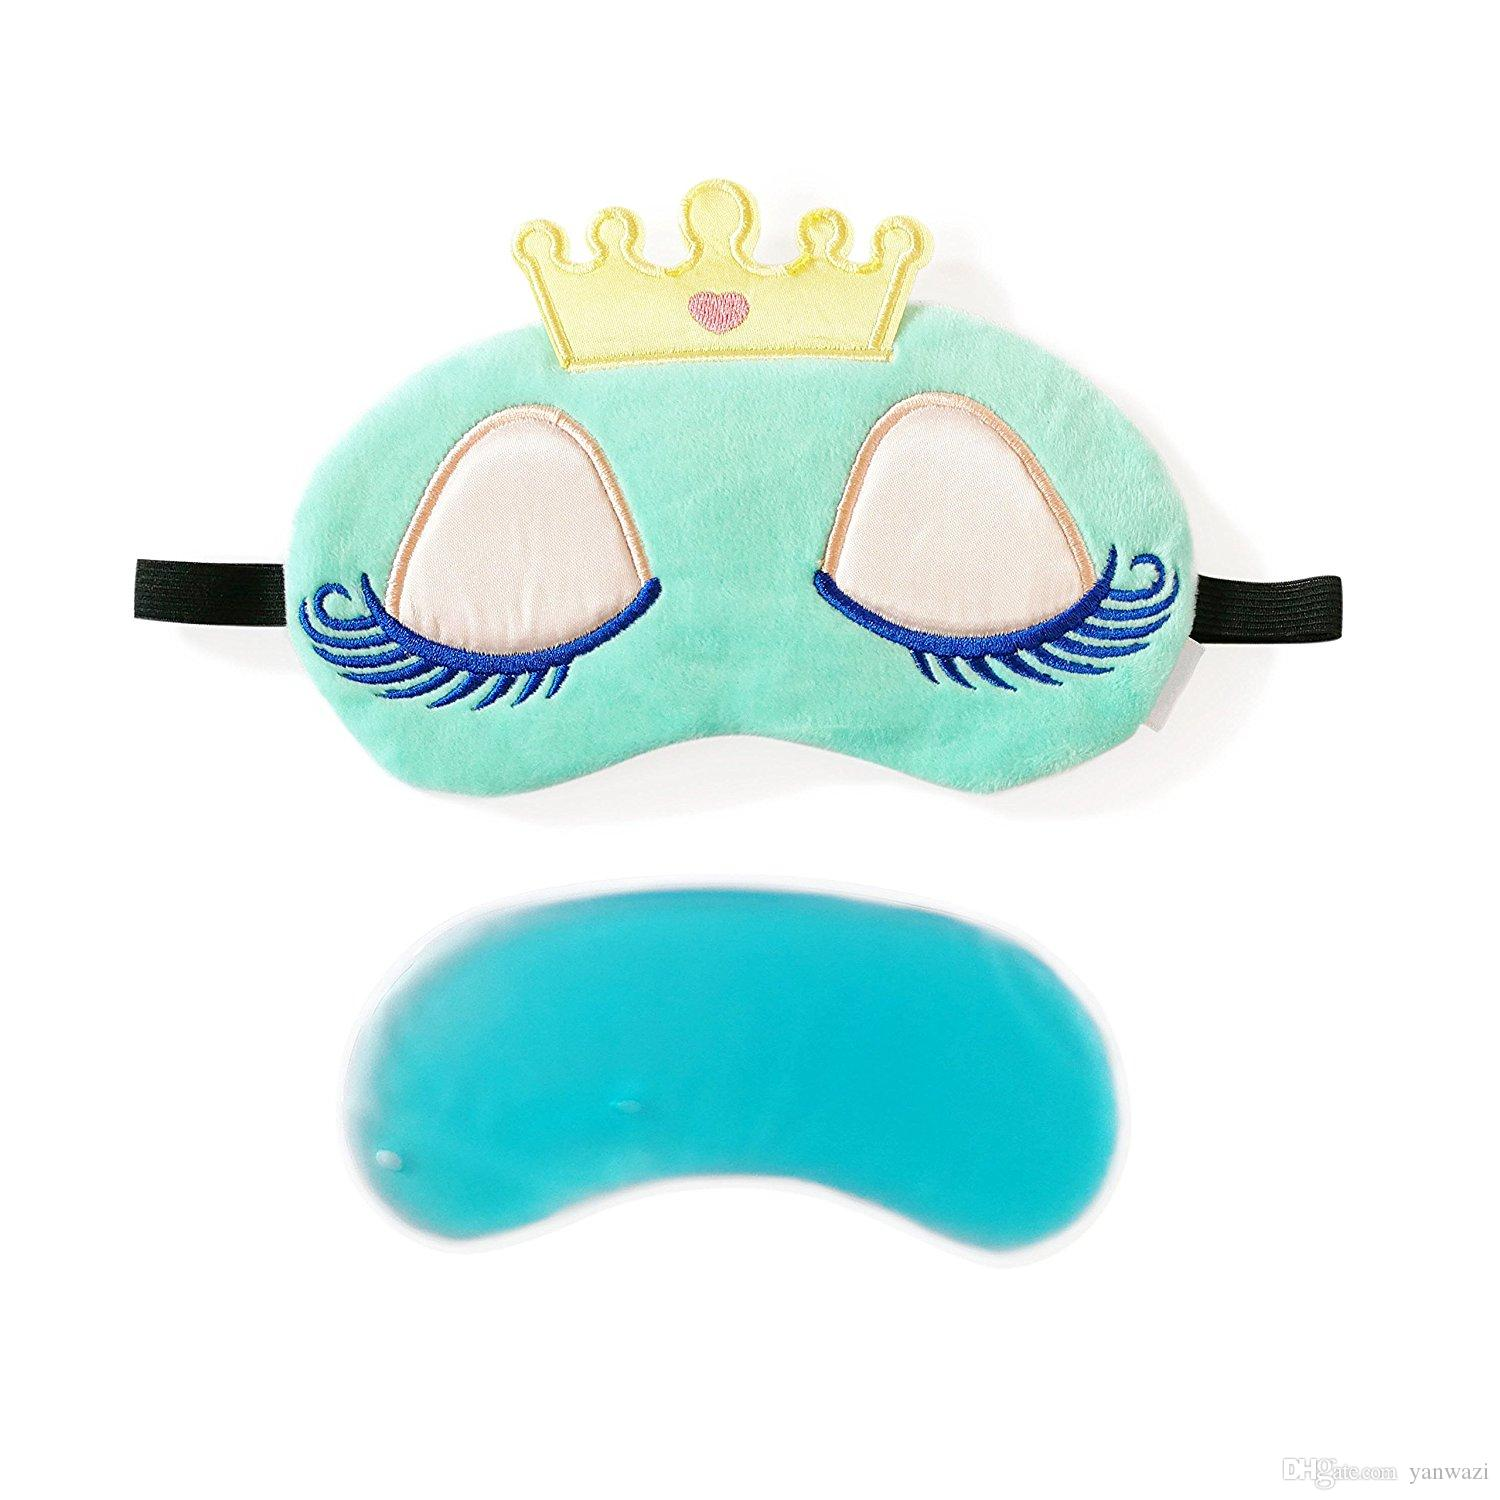 3D Sweet Sleep Princess Beauty Eye Mask with Reusable Gel Pad, Cold Hot SPA  Therapy for Dry Eyes and Puffy Eyes, Relaxes Your Eye